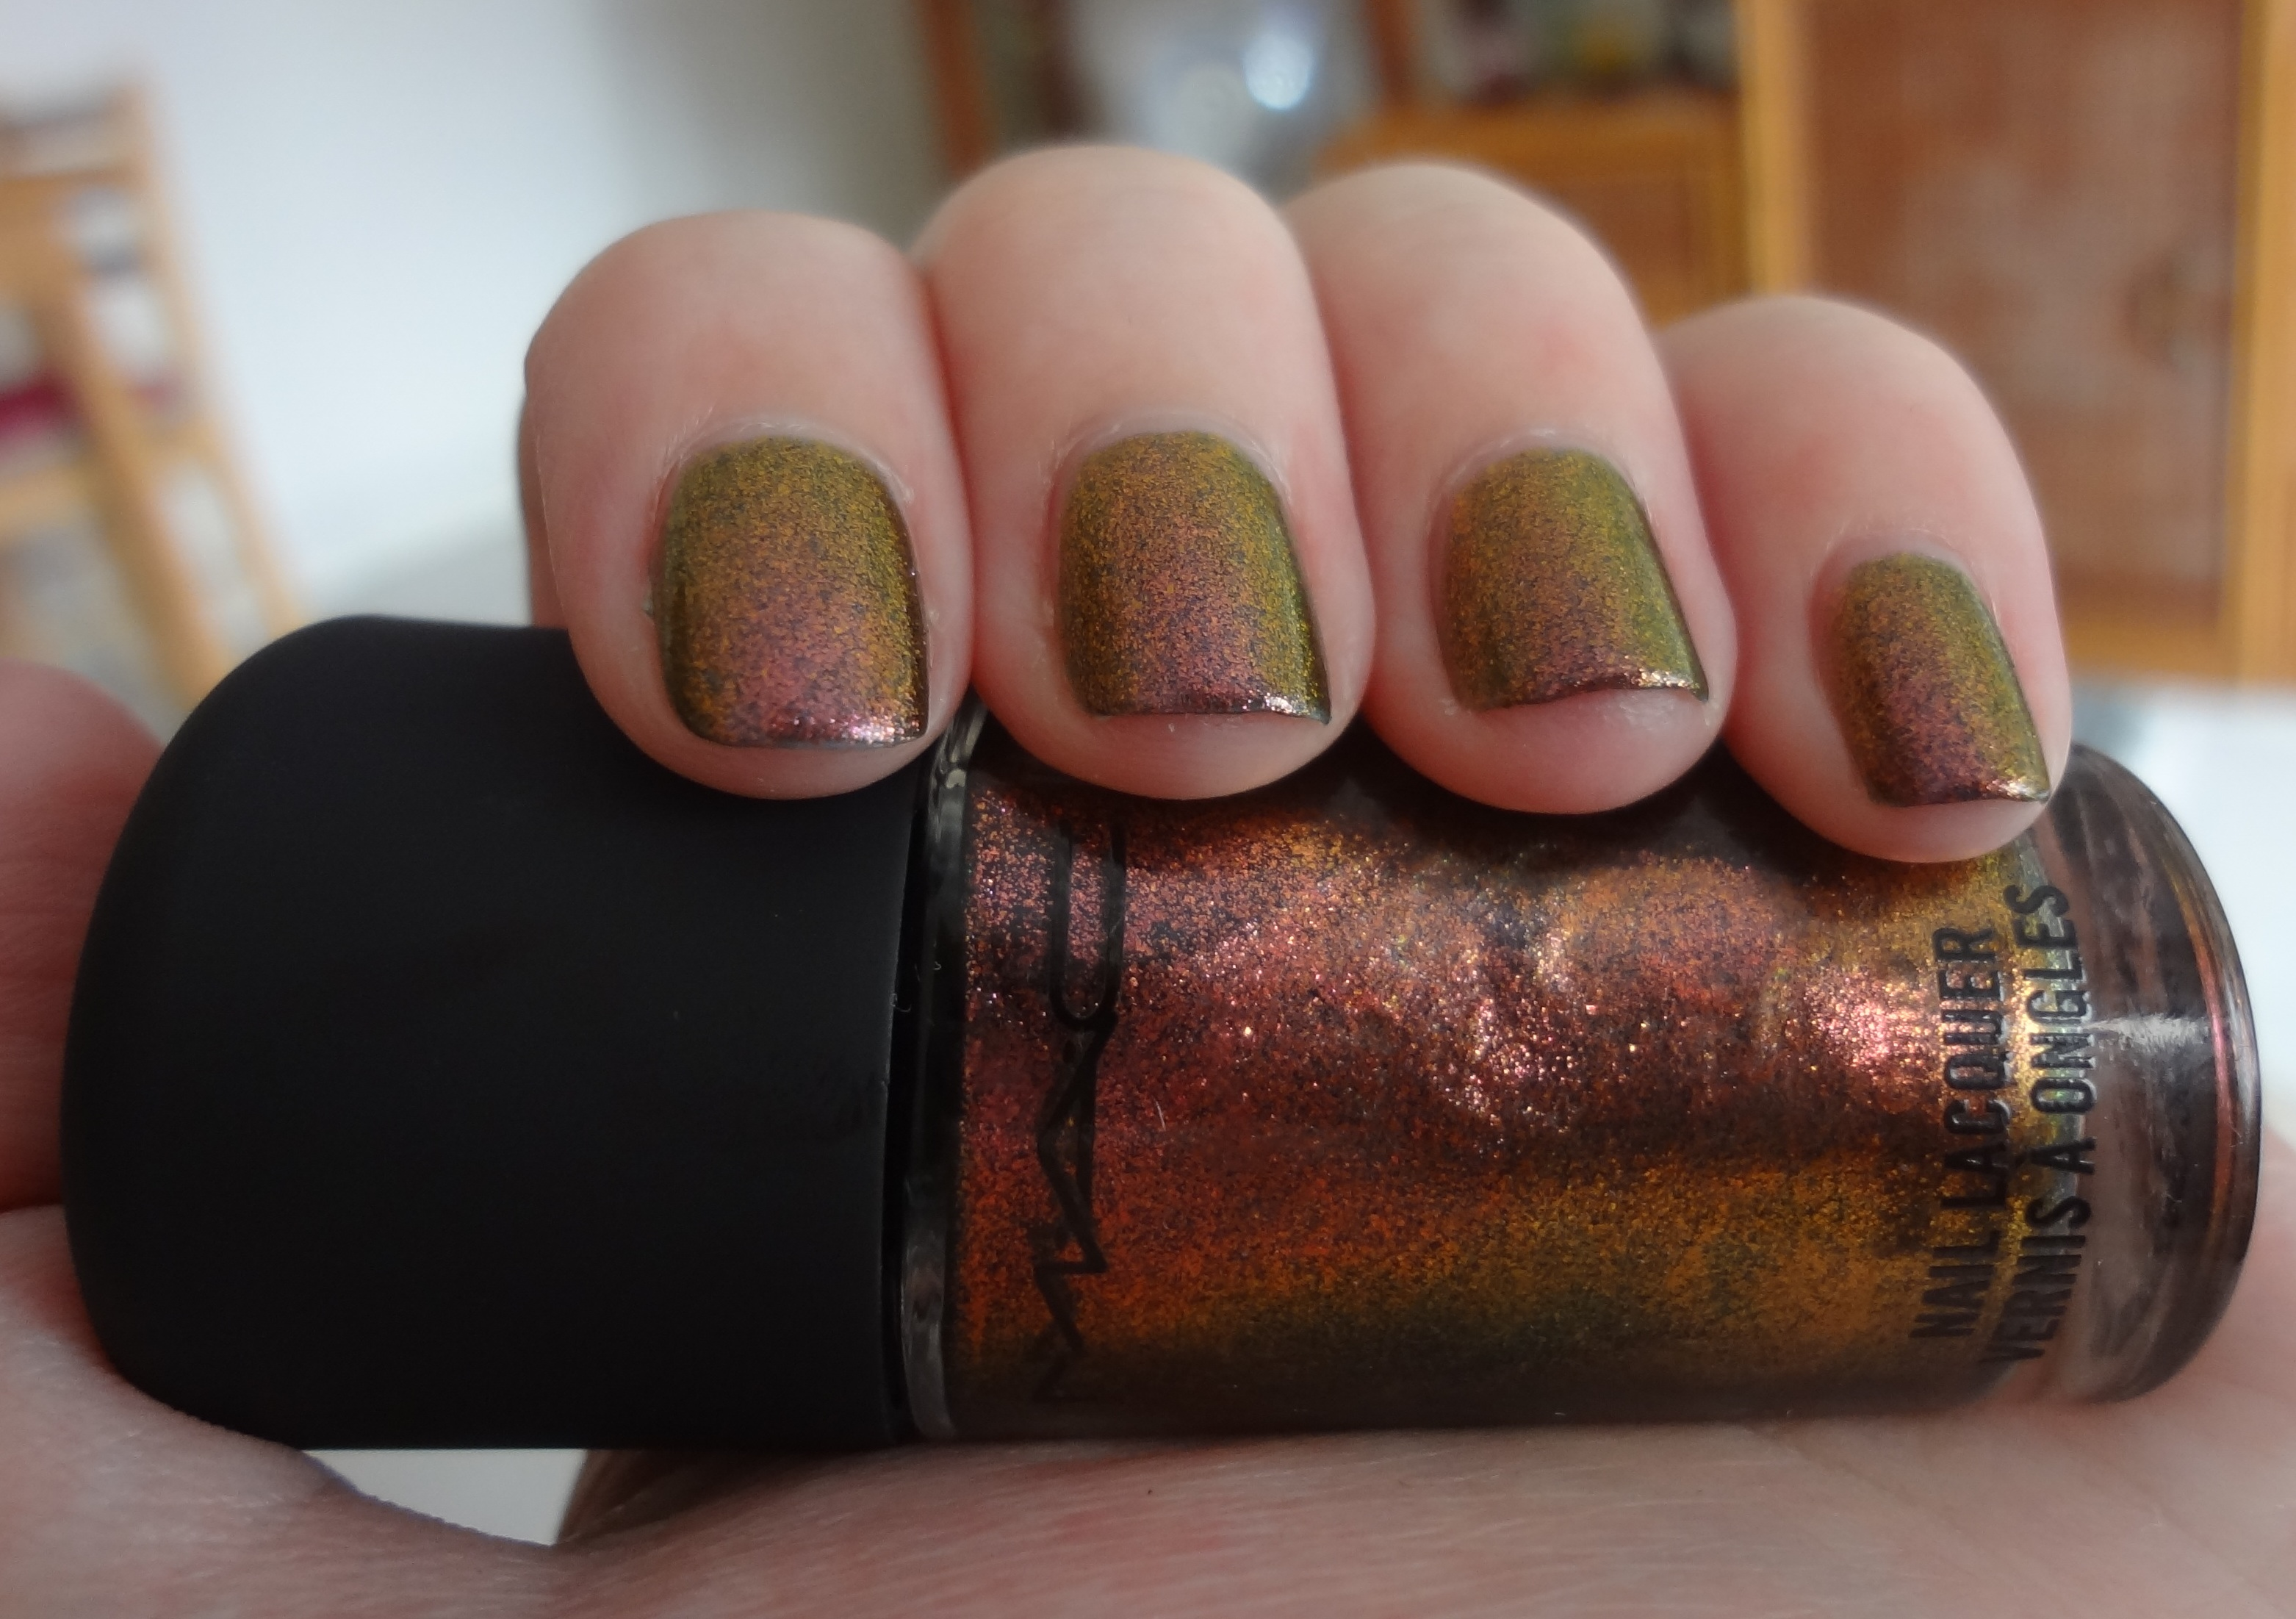 Mac Mean Green Nail Polish Review Through The Looking